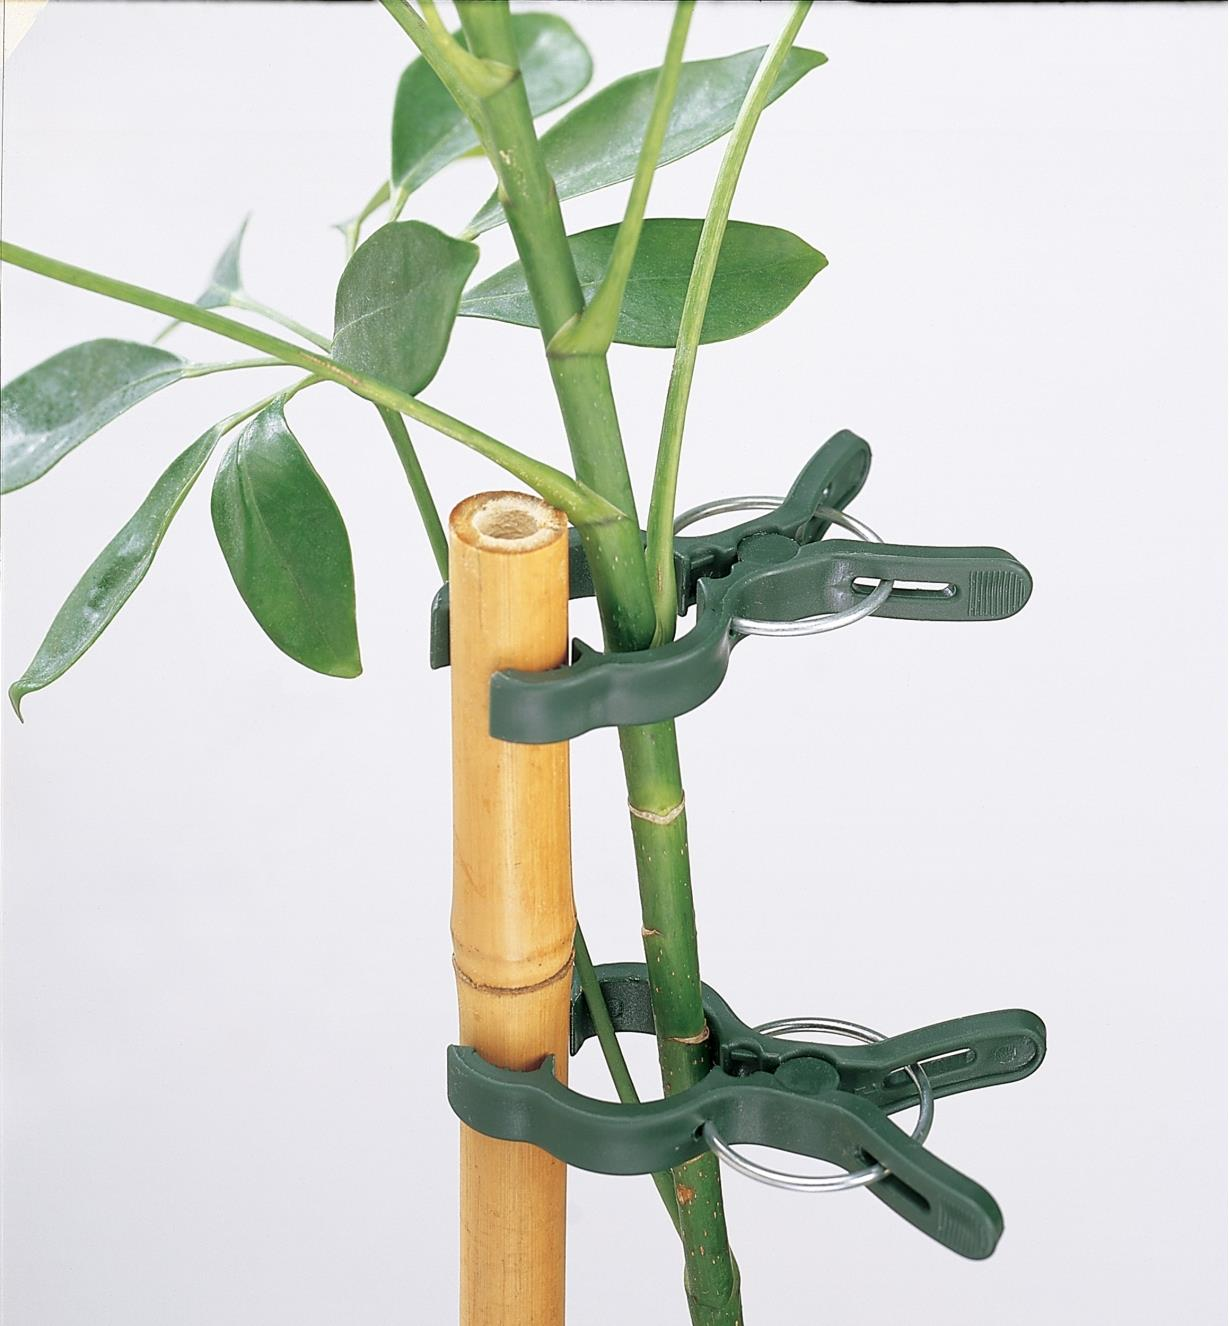 Two plant clips holding a plant stem to a bamboo stake